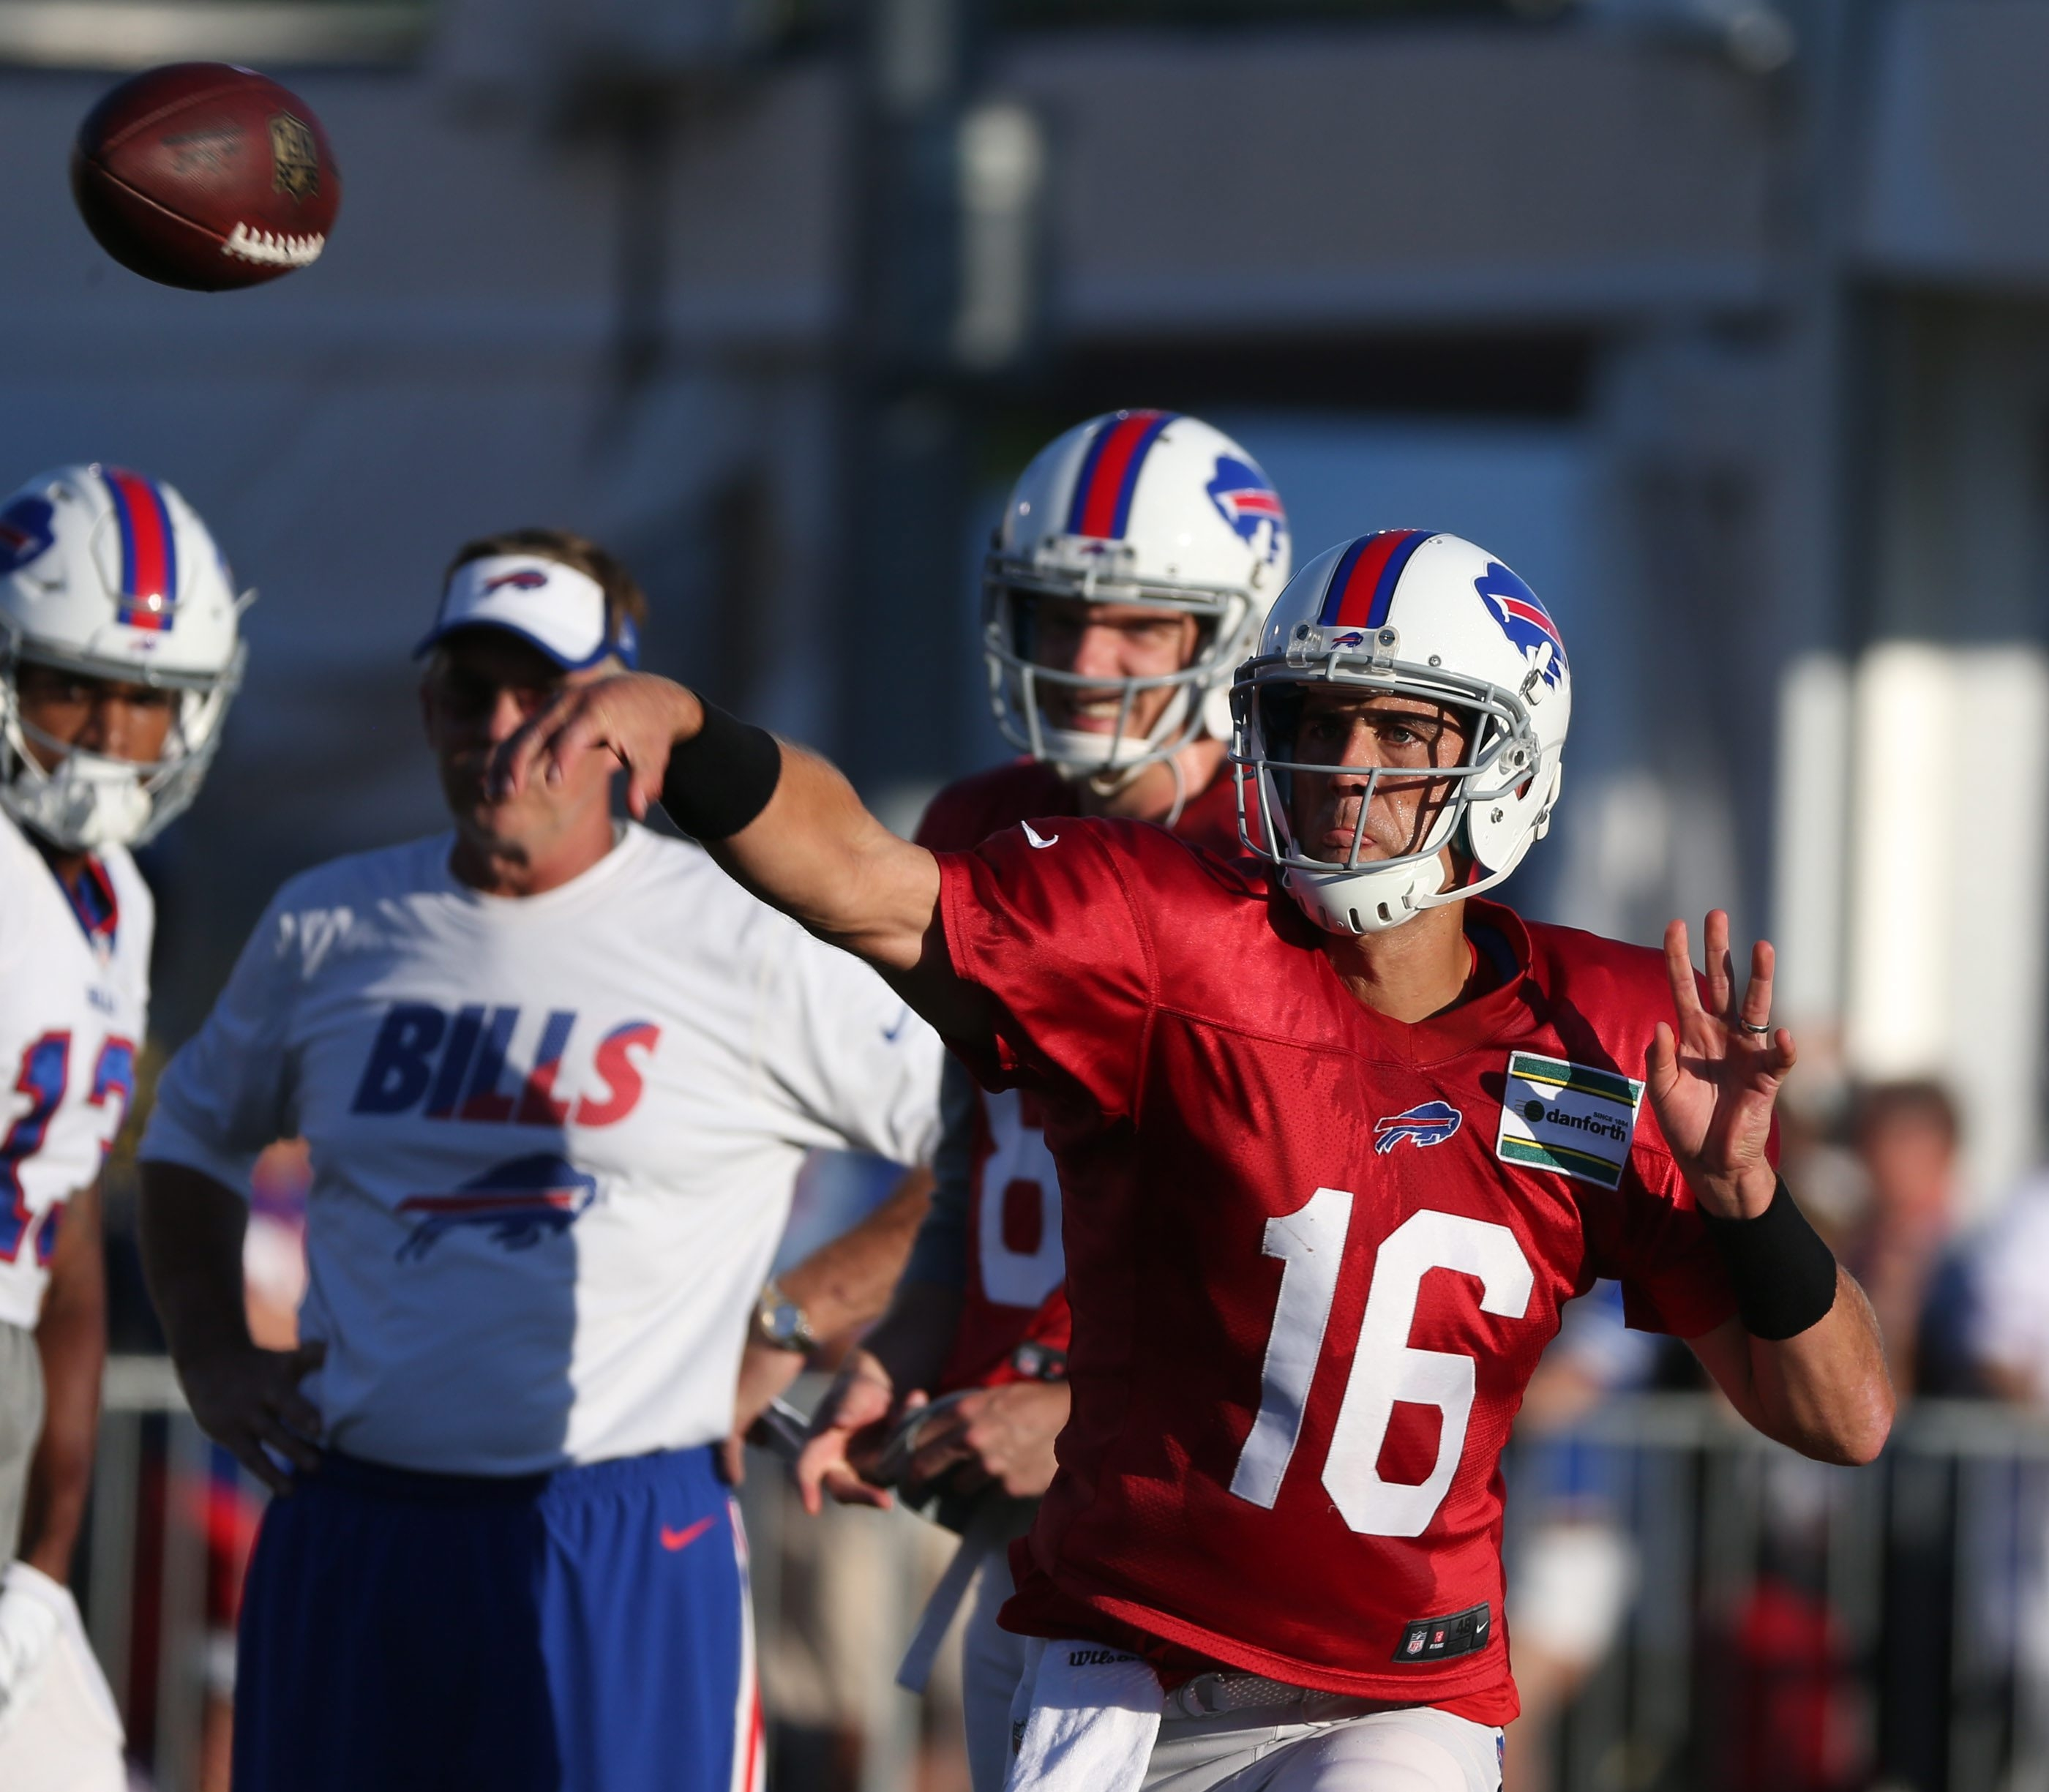 Buffalo Bills quarterback Matt Cassel (16) throws a pass in the end zone during practice tonight at St. John Fisher College in Pittsford,NY on Sunday, Aug. 23, 2015.  (James P. McCoy/ Buffalo News)